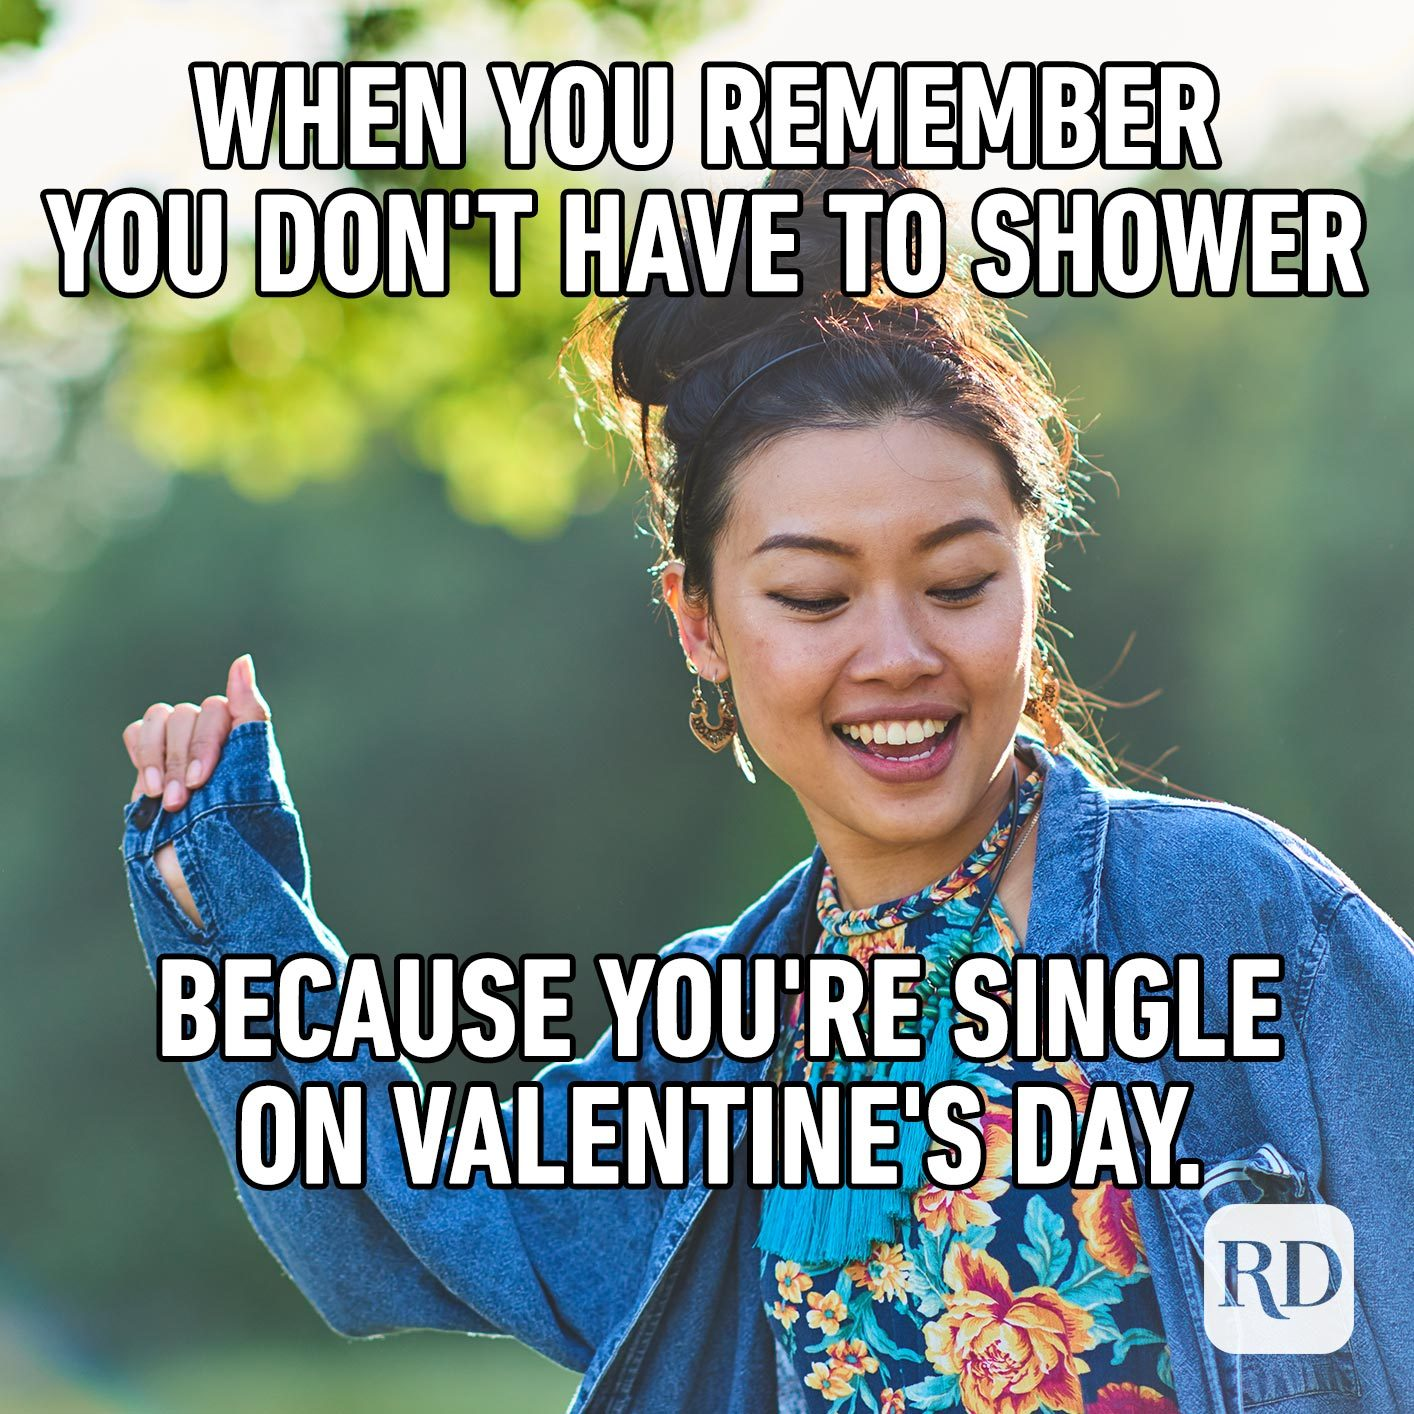 Woman dancing. Meme text: When you remember you don't have to shower because you're single on Valentine's Day.